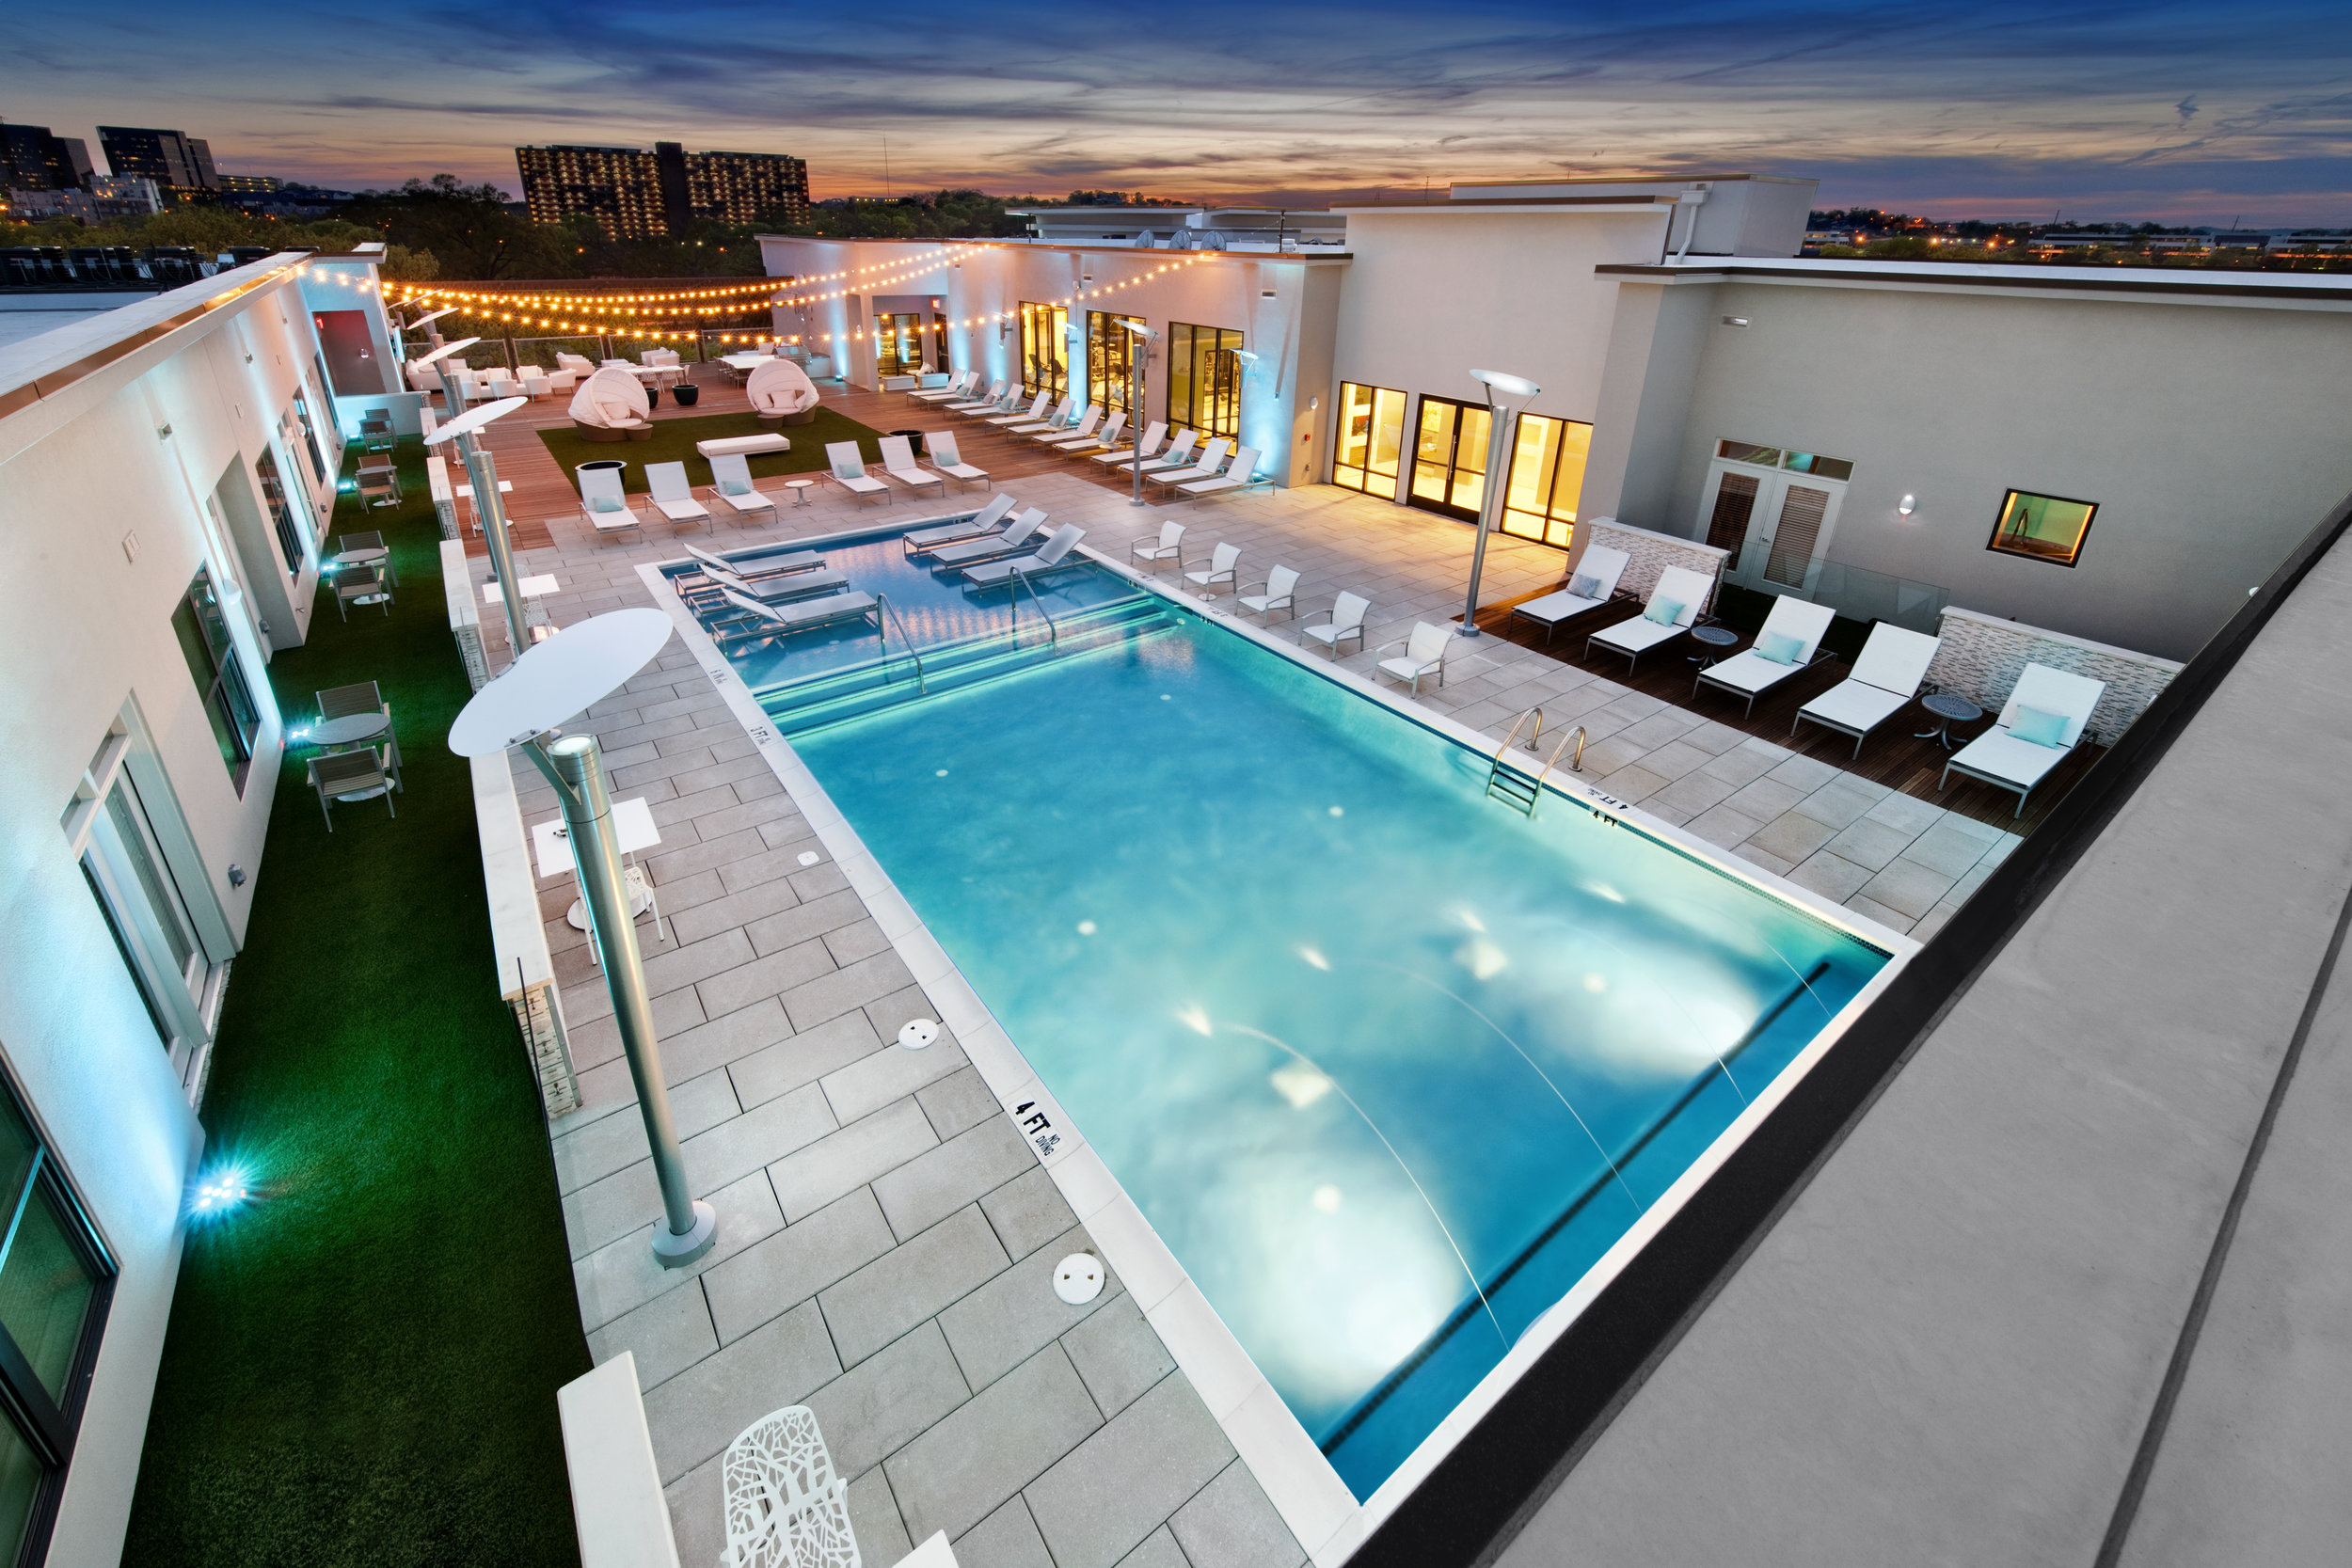 Rooftop Pool, Gym, Conference Rooms, Work From Home Spaces, and Resident Events in Nashville TN